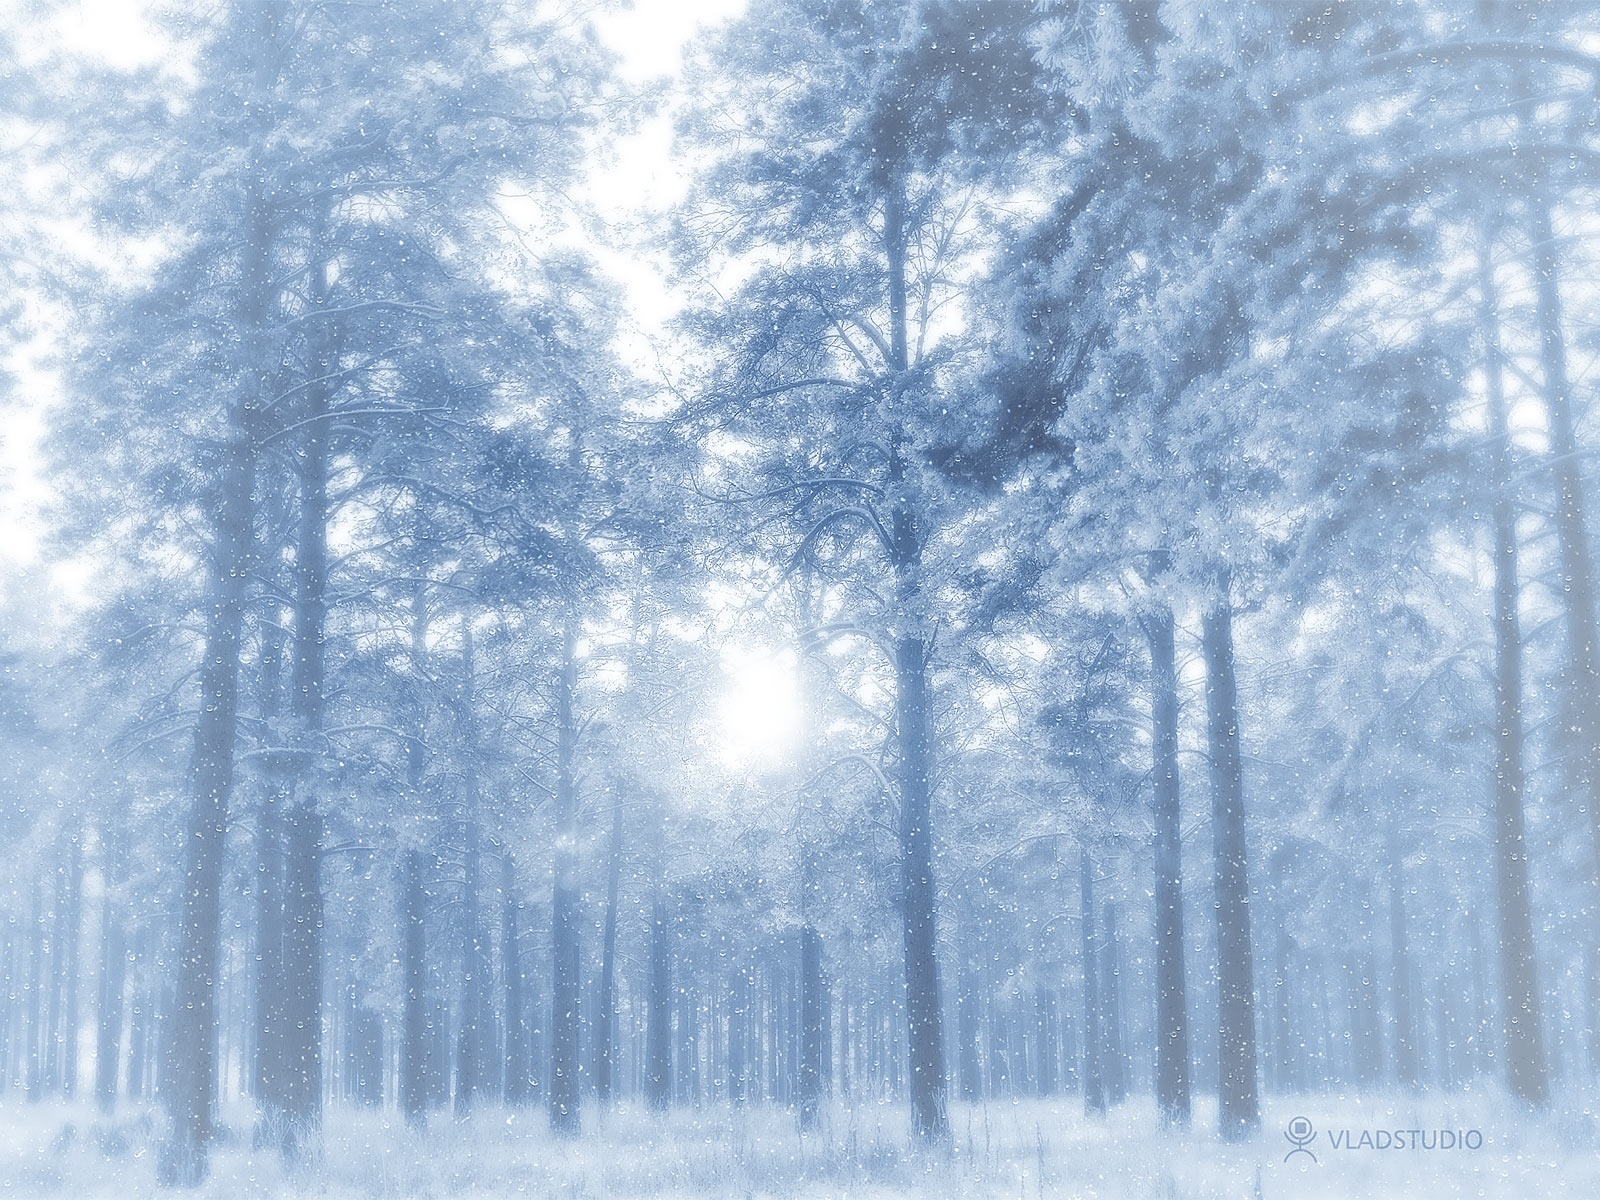 1600x1200 Winter forest desktop PC and Mac wallpaper 1600x1200